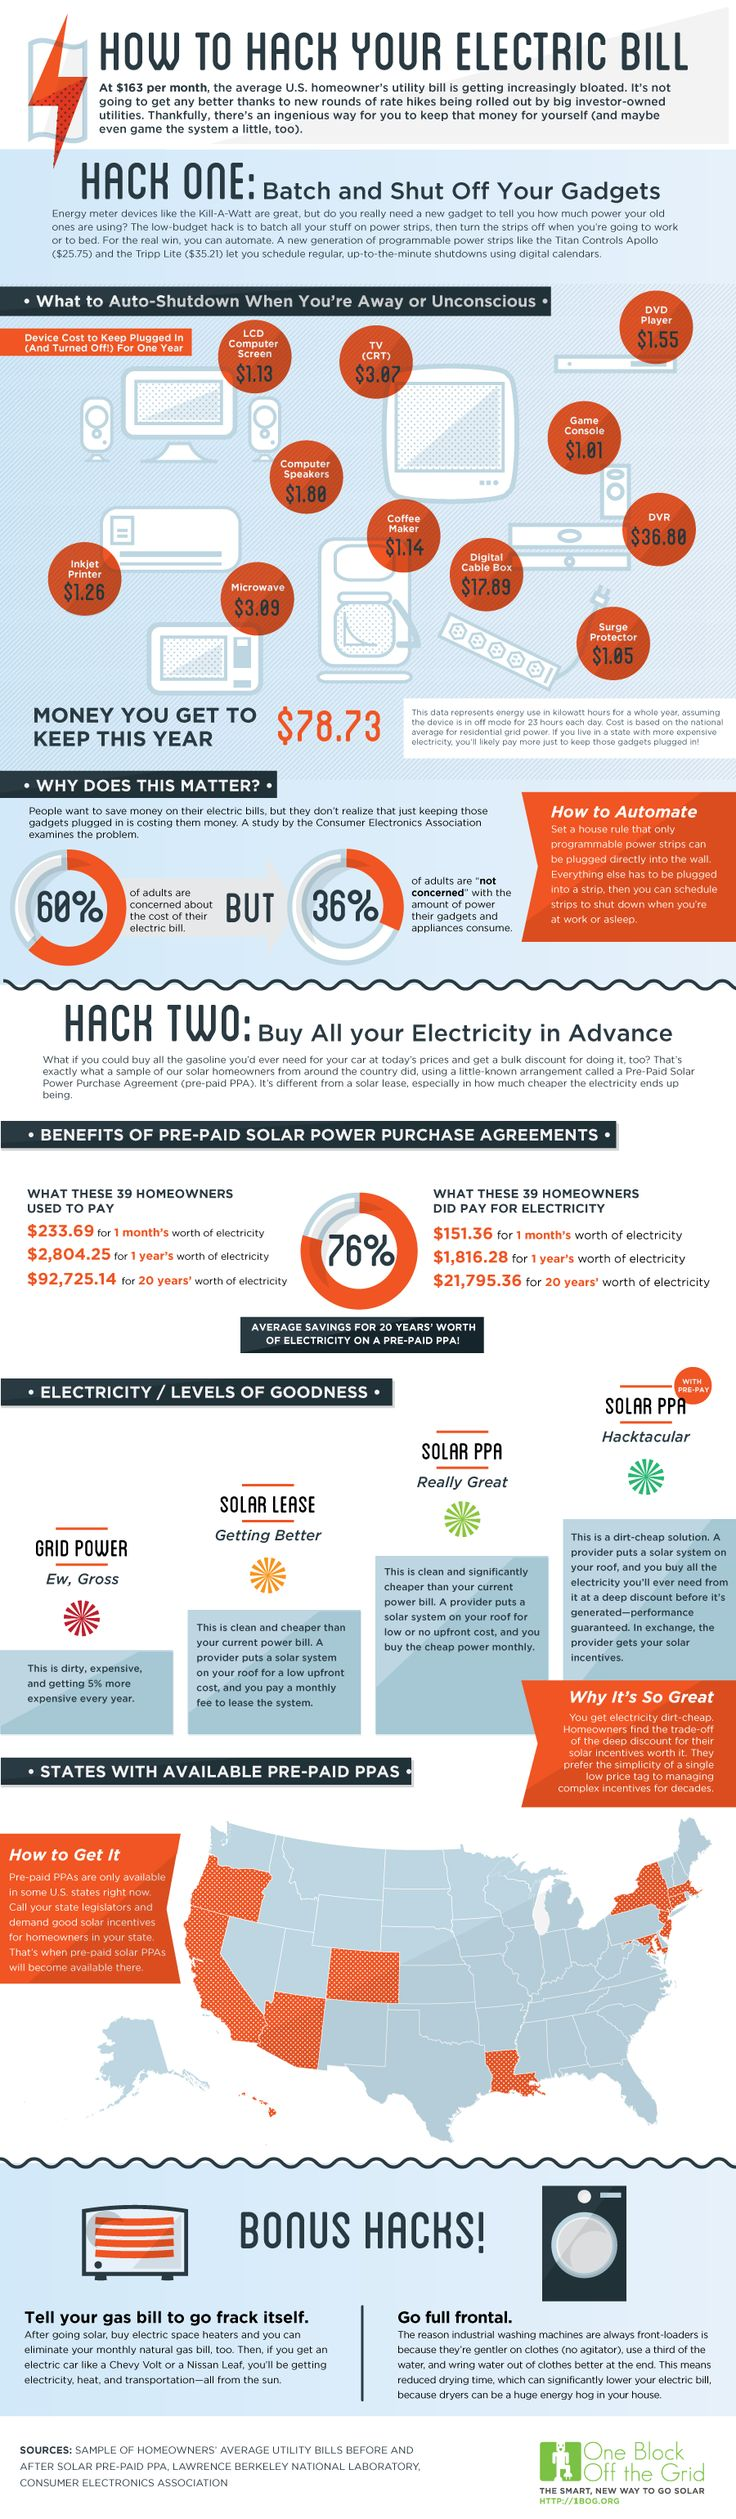 best 25+ electricity bill ideas on pinterest